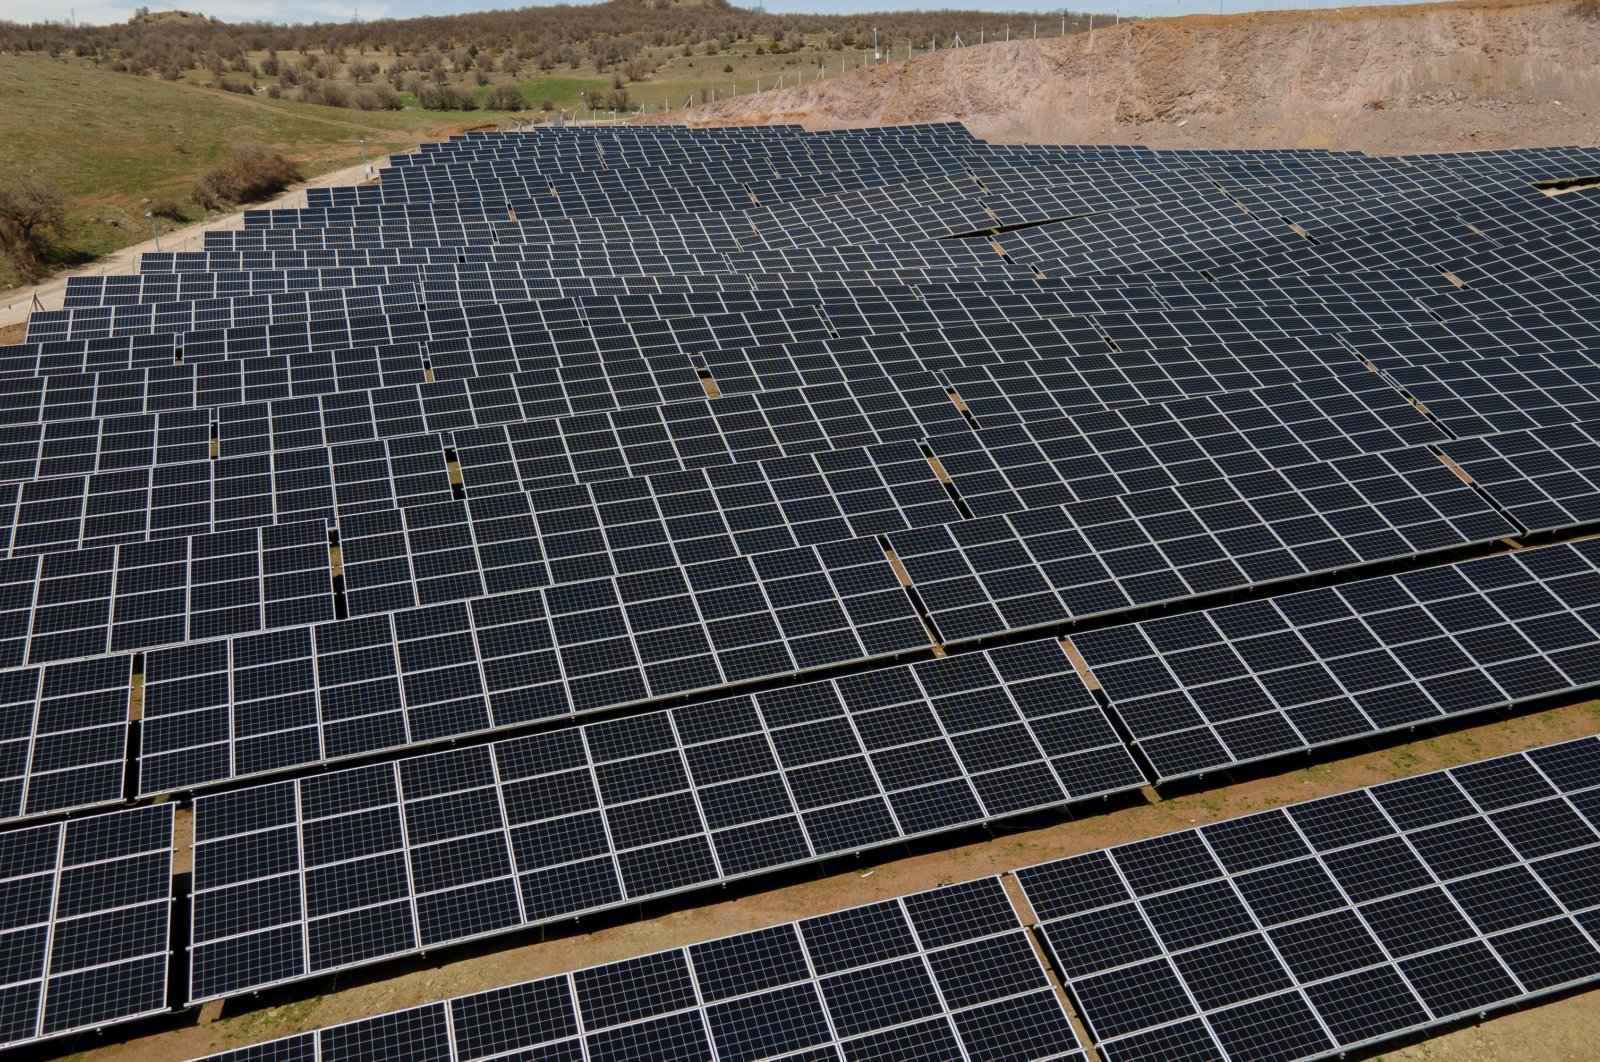 Solar panels are seen in the northern province of Giresun, Turkey, April 22, 2021. (AA Photo)